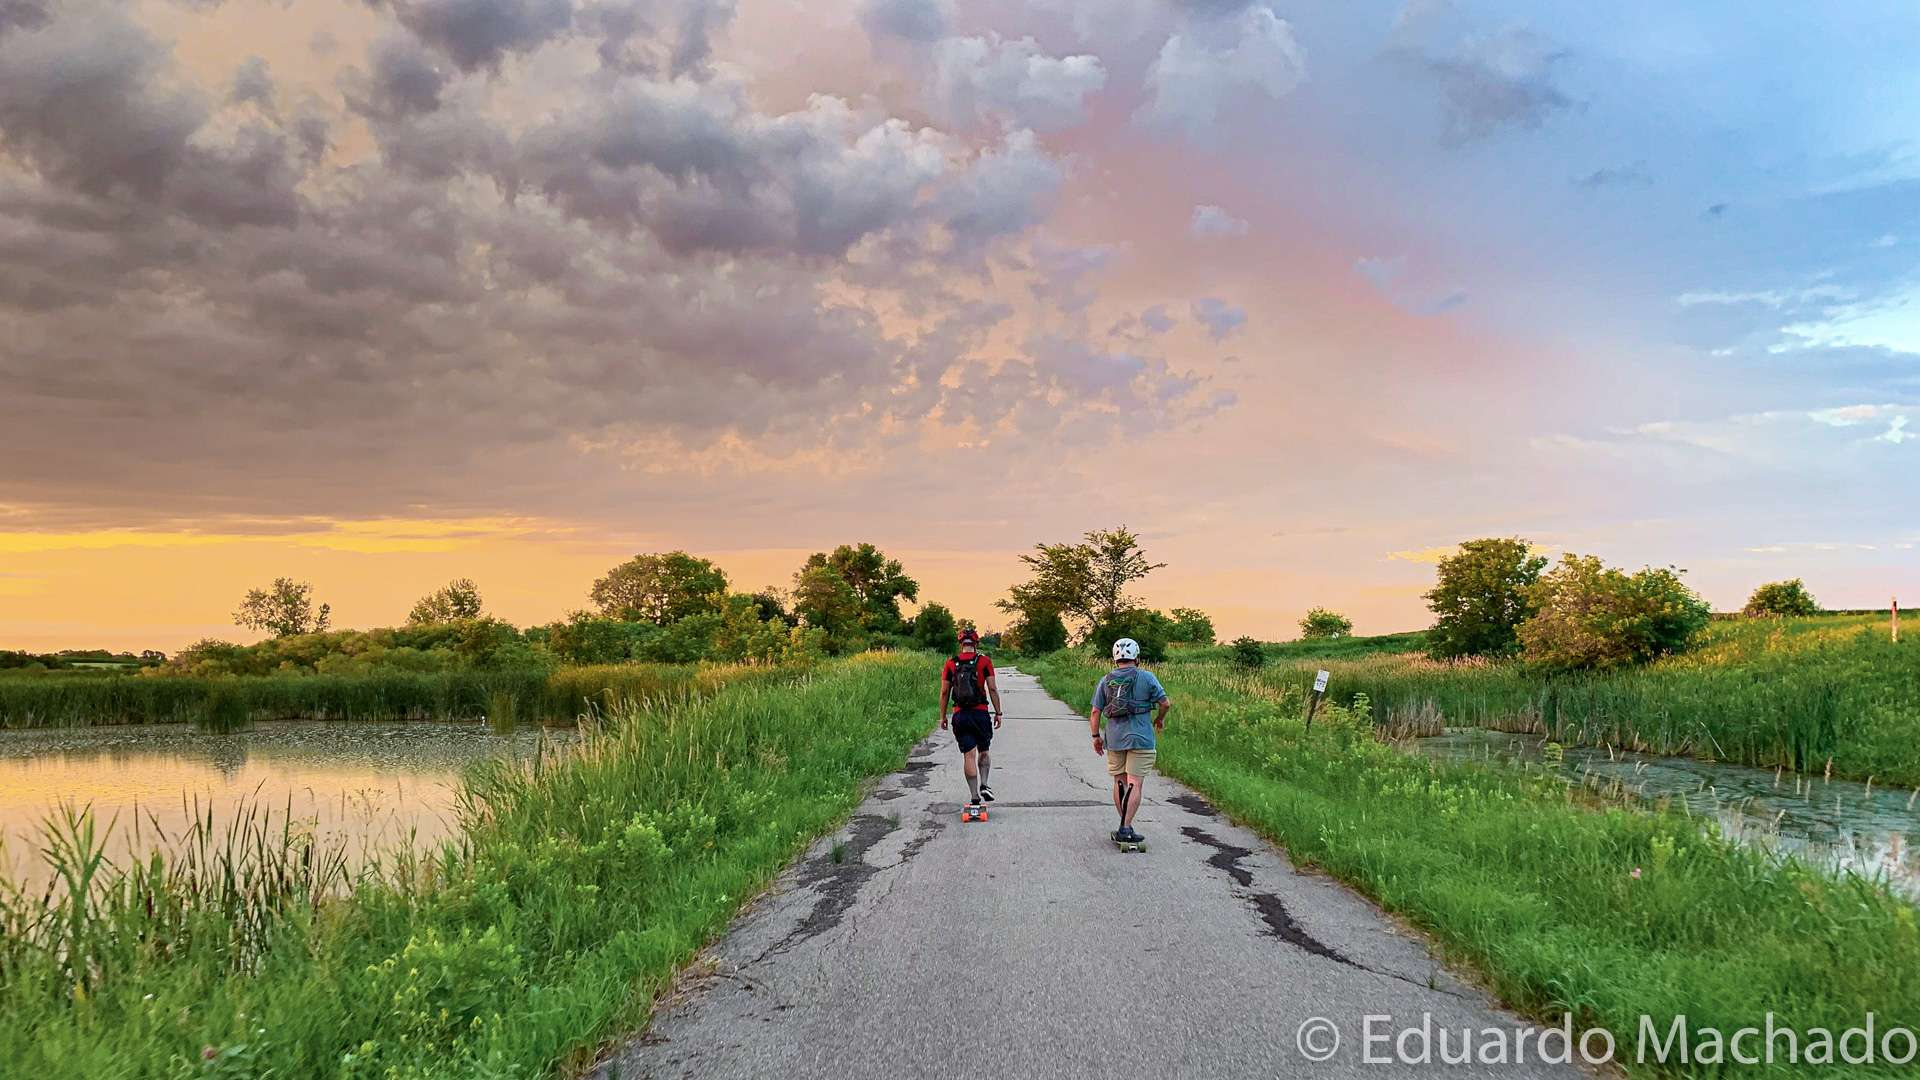 Two men roll down a trail on skateboards at sunset